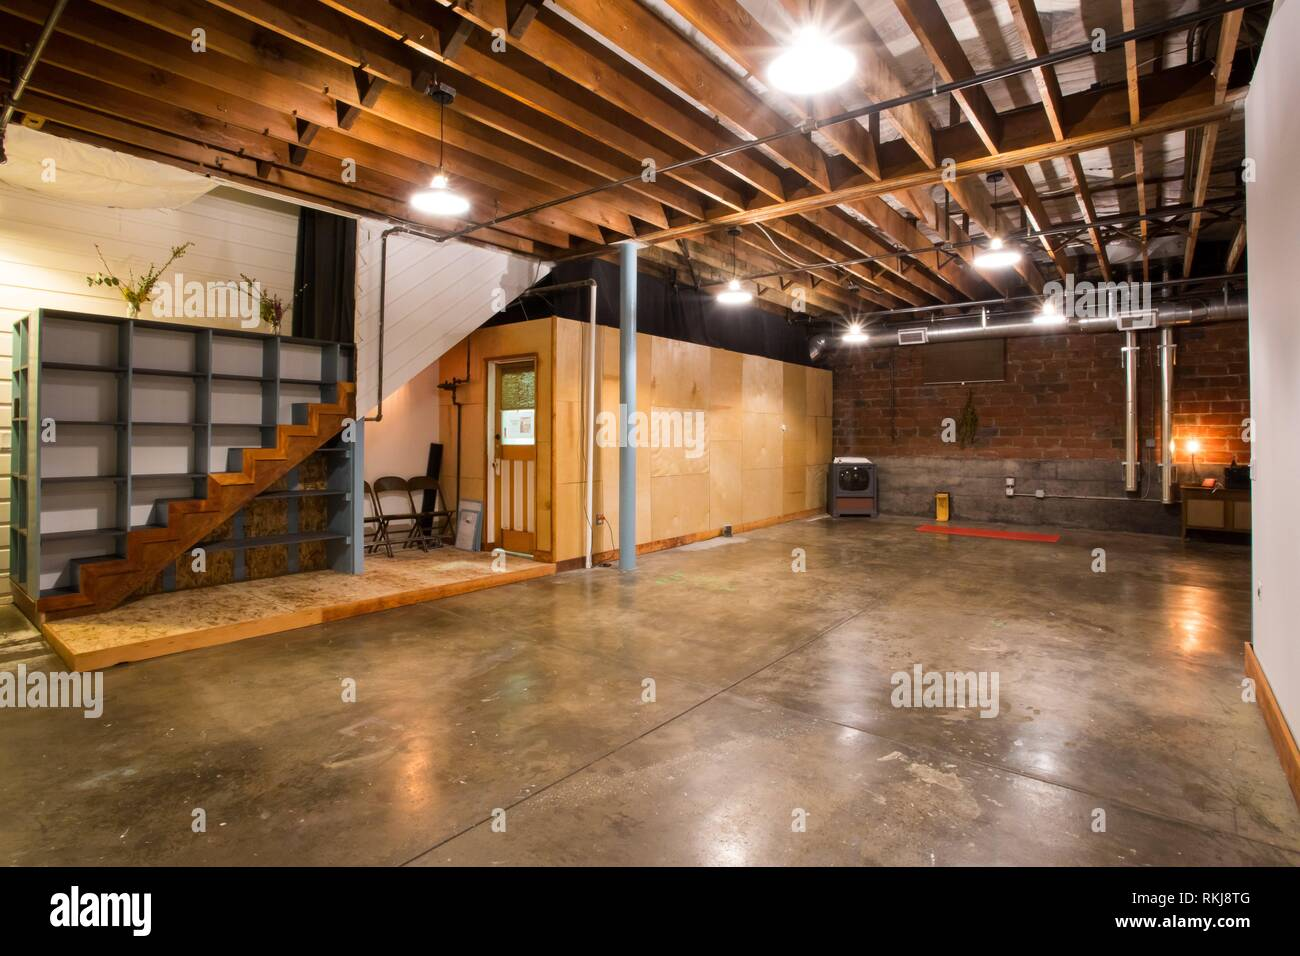 Interior space at a yoga studio ready for students to bring their mats and practice yoga. - Stock Image